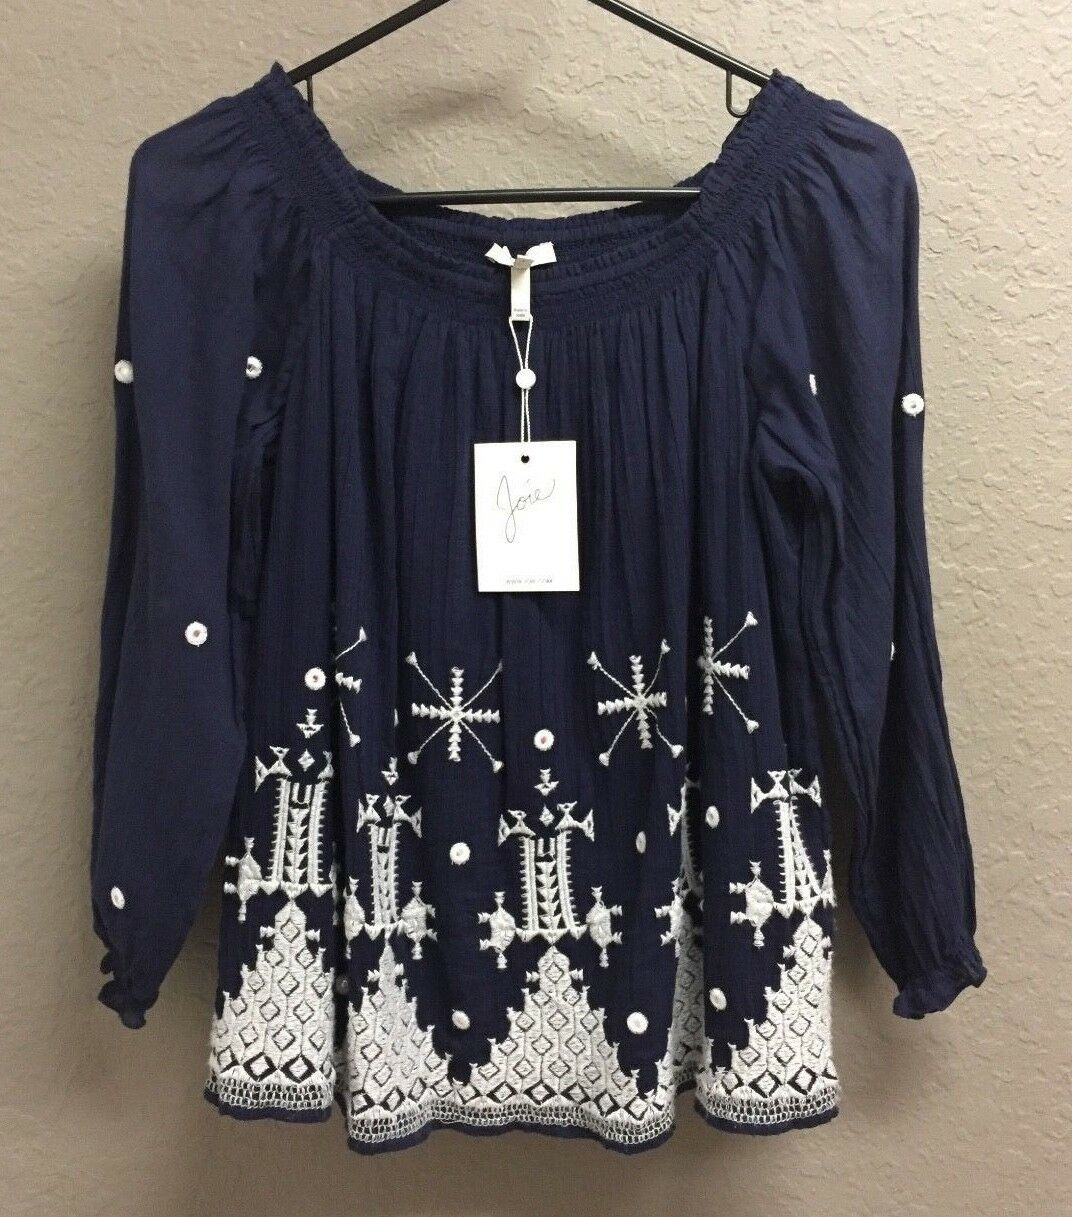 NWT  JOIE Kristine Off-Shoulder Embroiderot Blouse Navy Weiß Größe Small